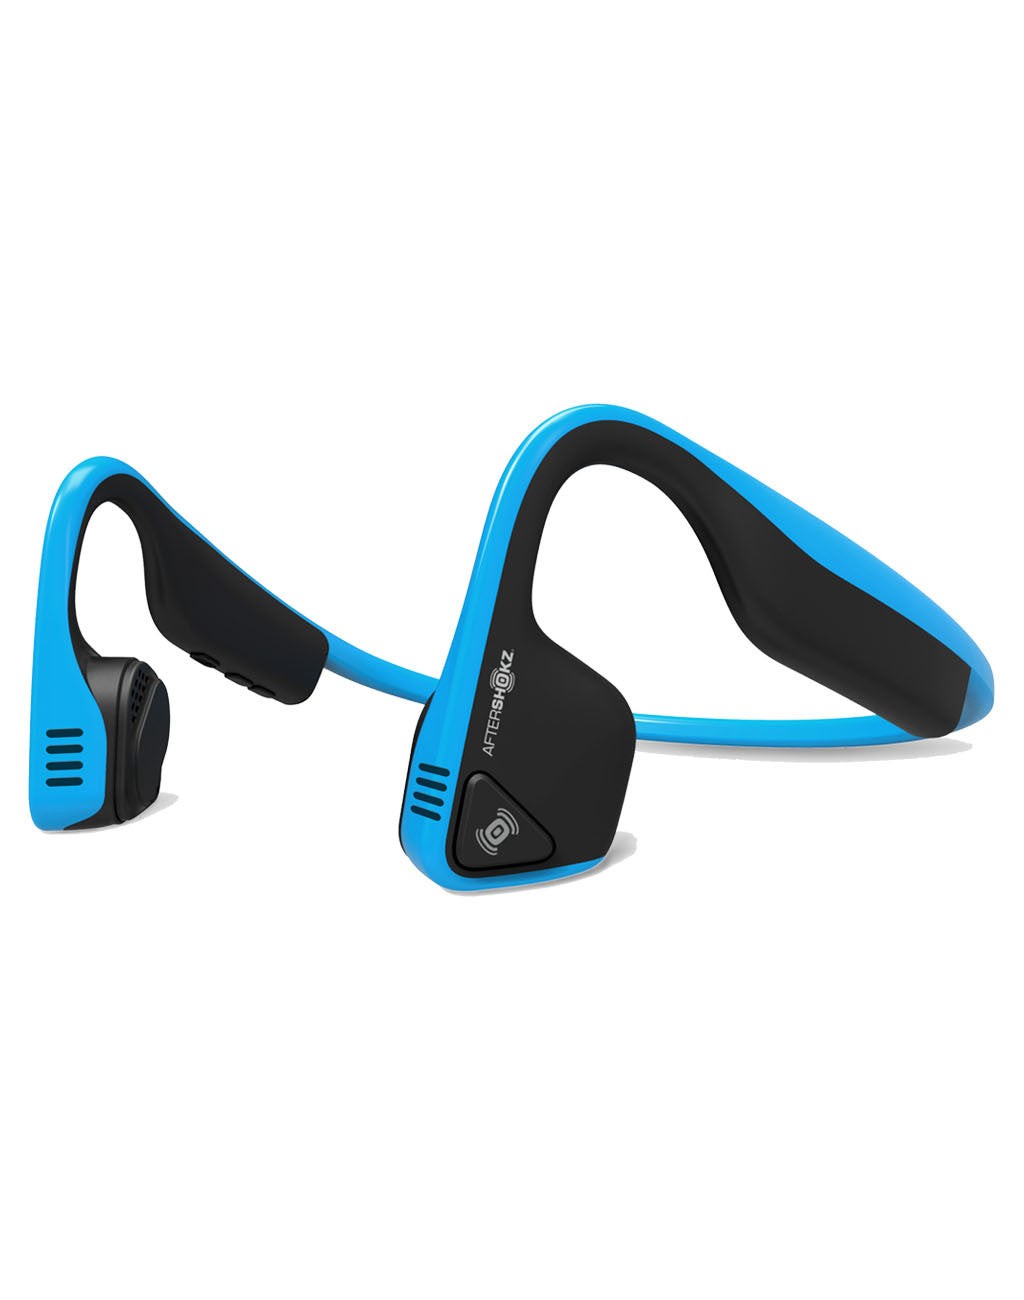 AfterShokz Trekz Titanium Wireless Bluetooth Bone Conduction HeadphonesOcean Blue_master_image